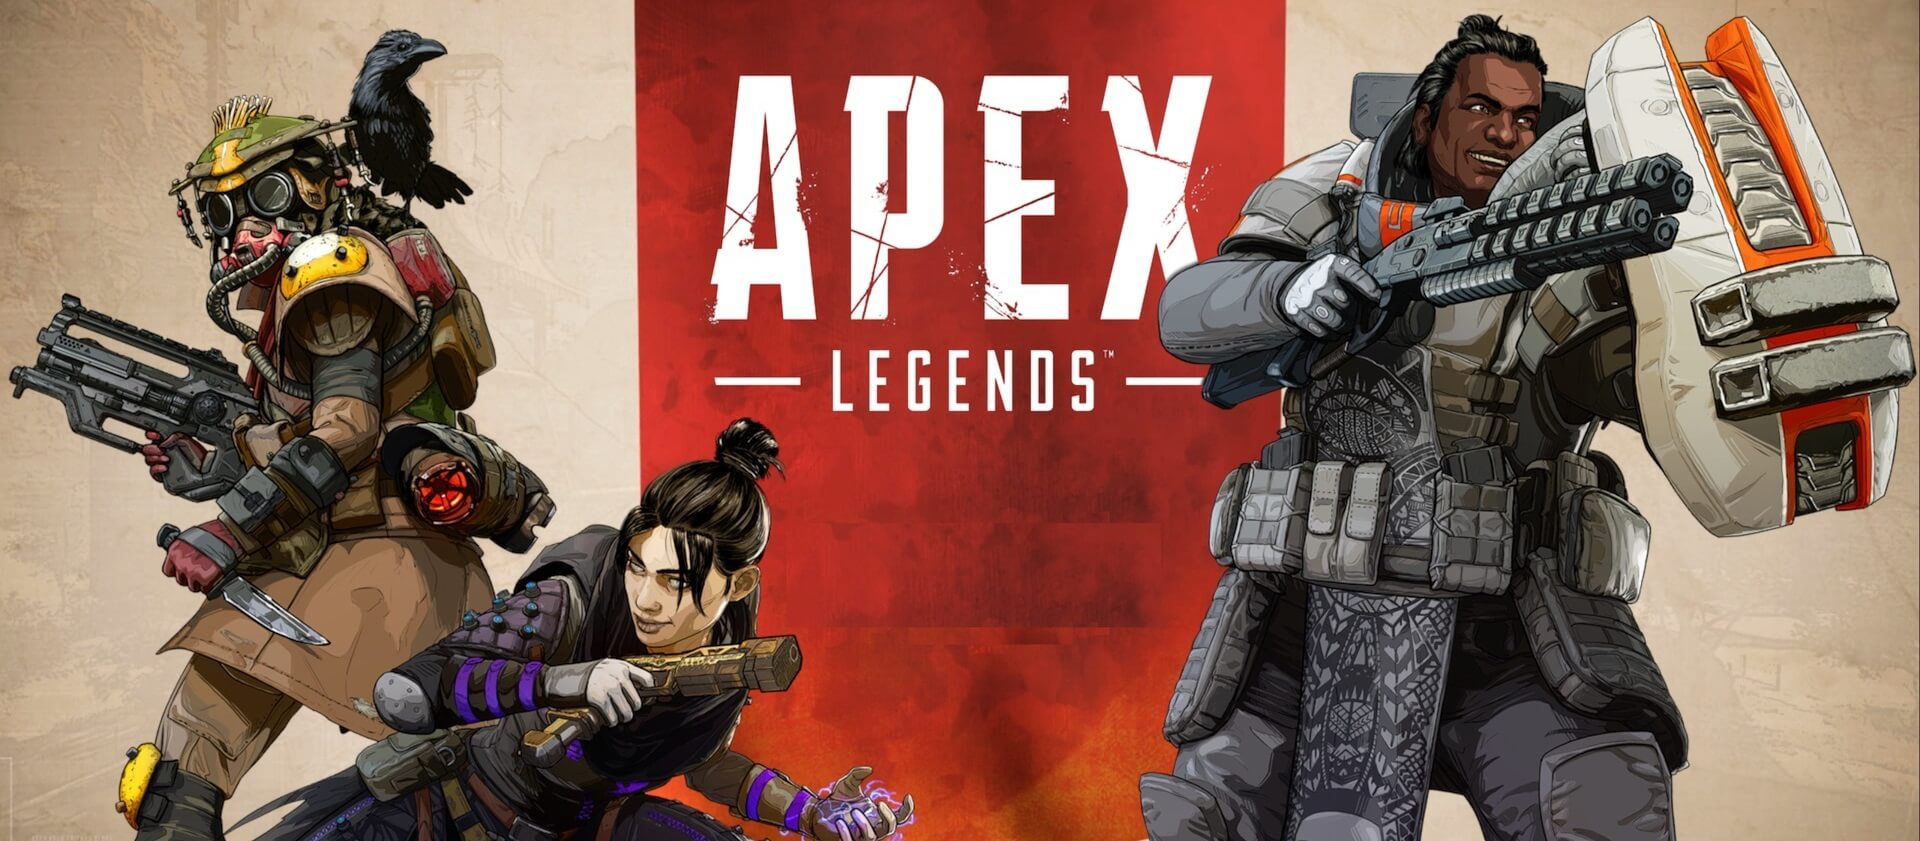 Apex Legends Review for Parents: What Should They Know?